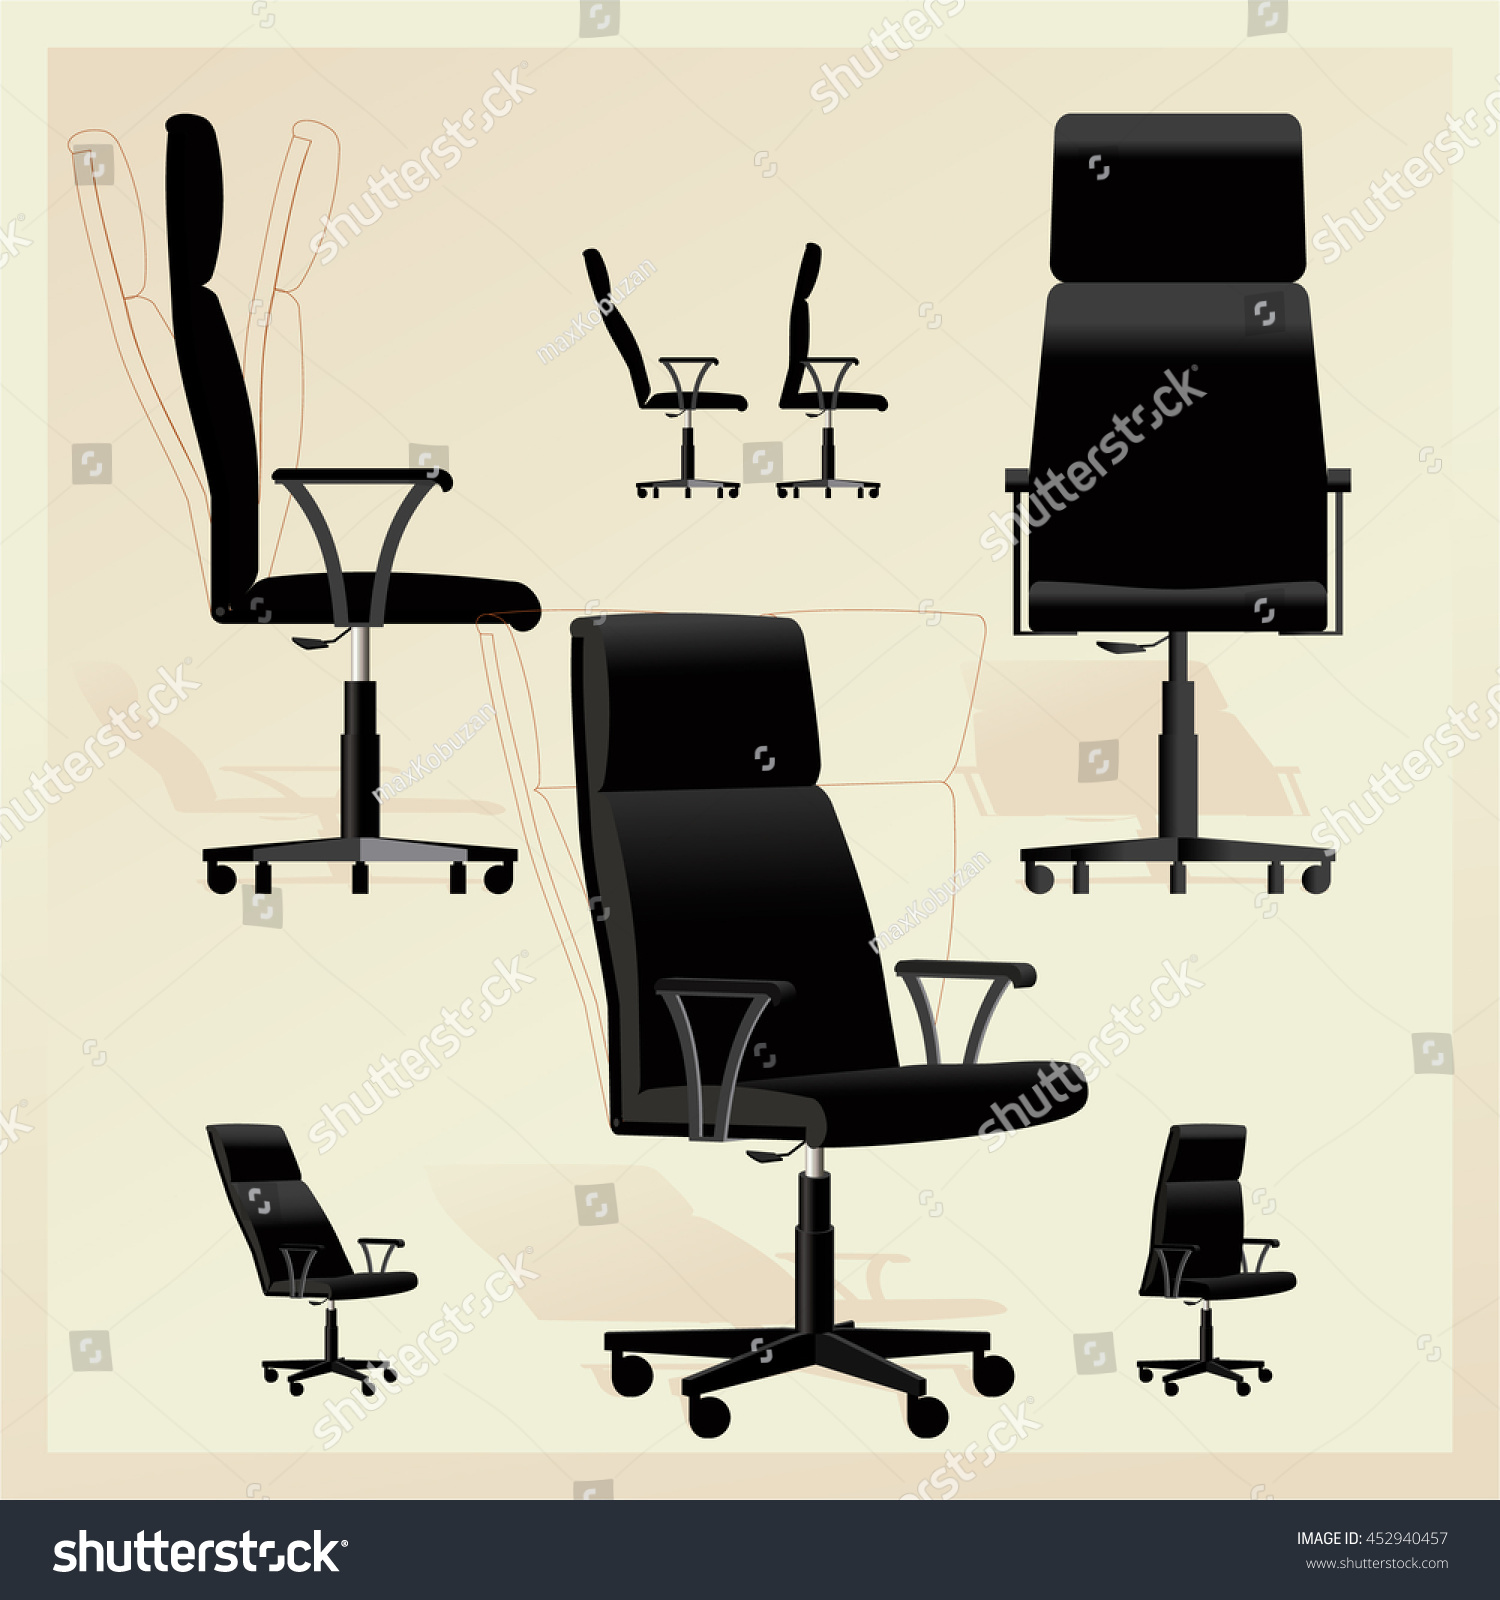 Black Leather fice Adjustable Chair Arms Stock Vector